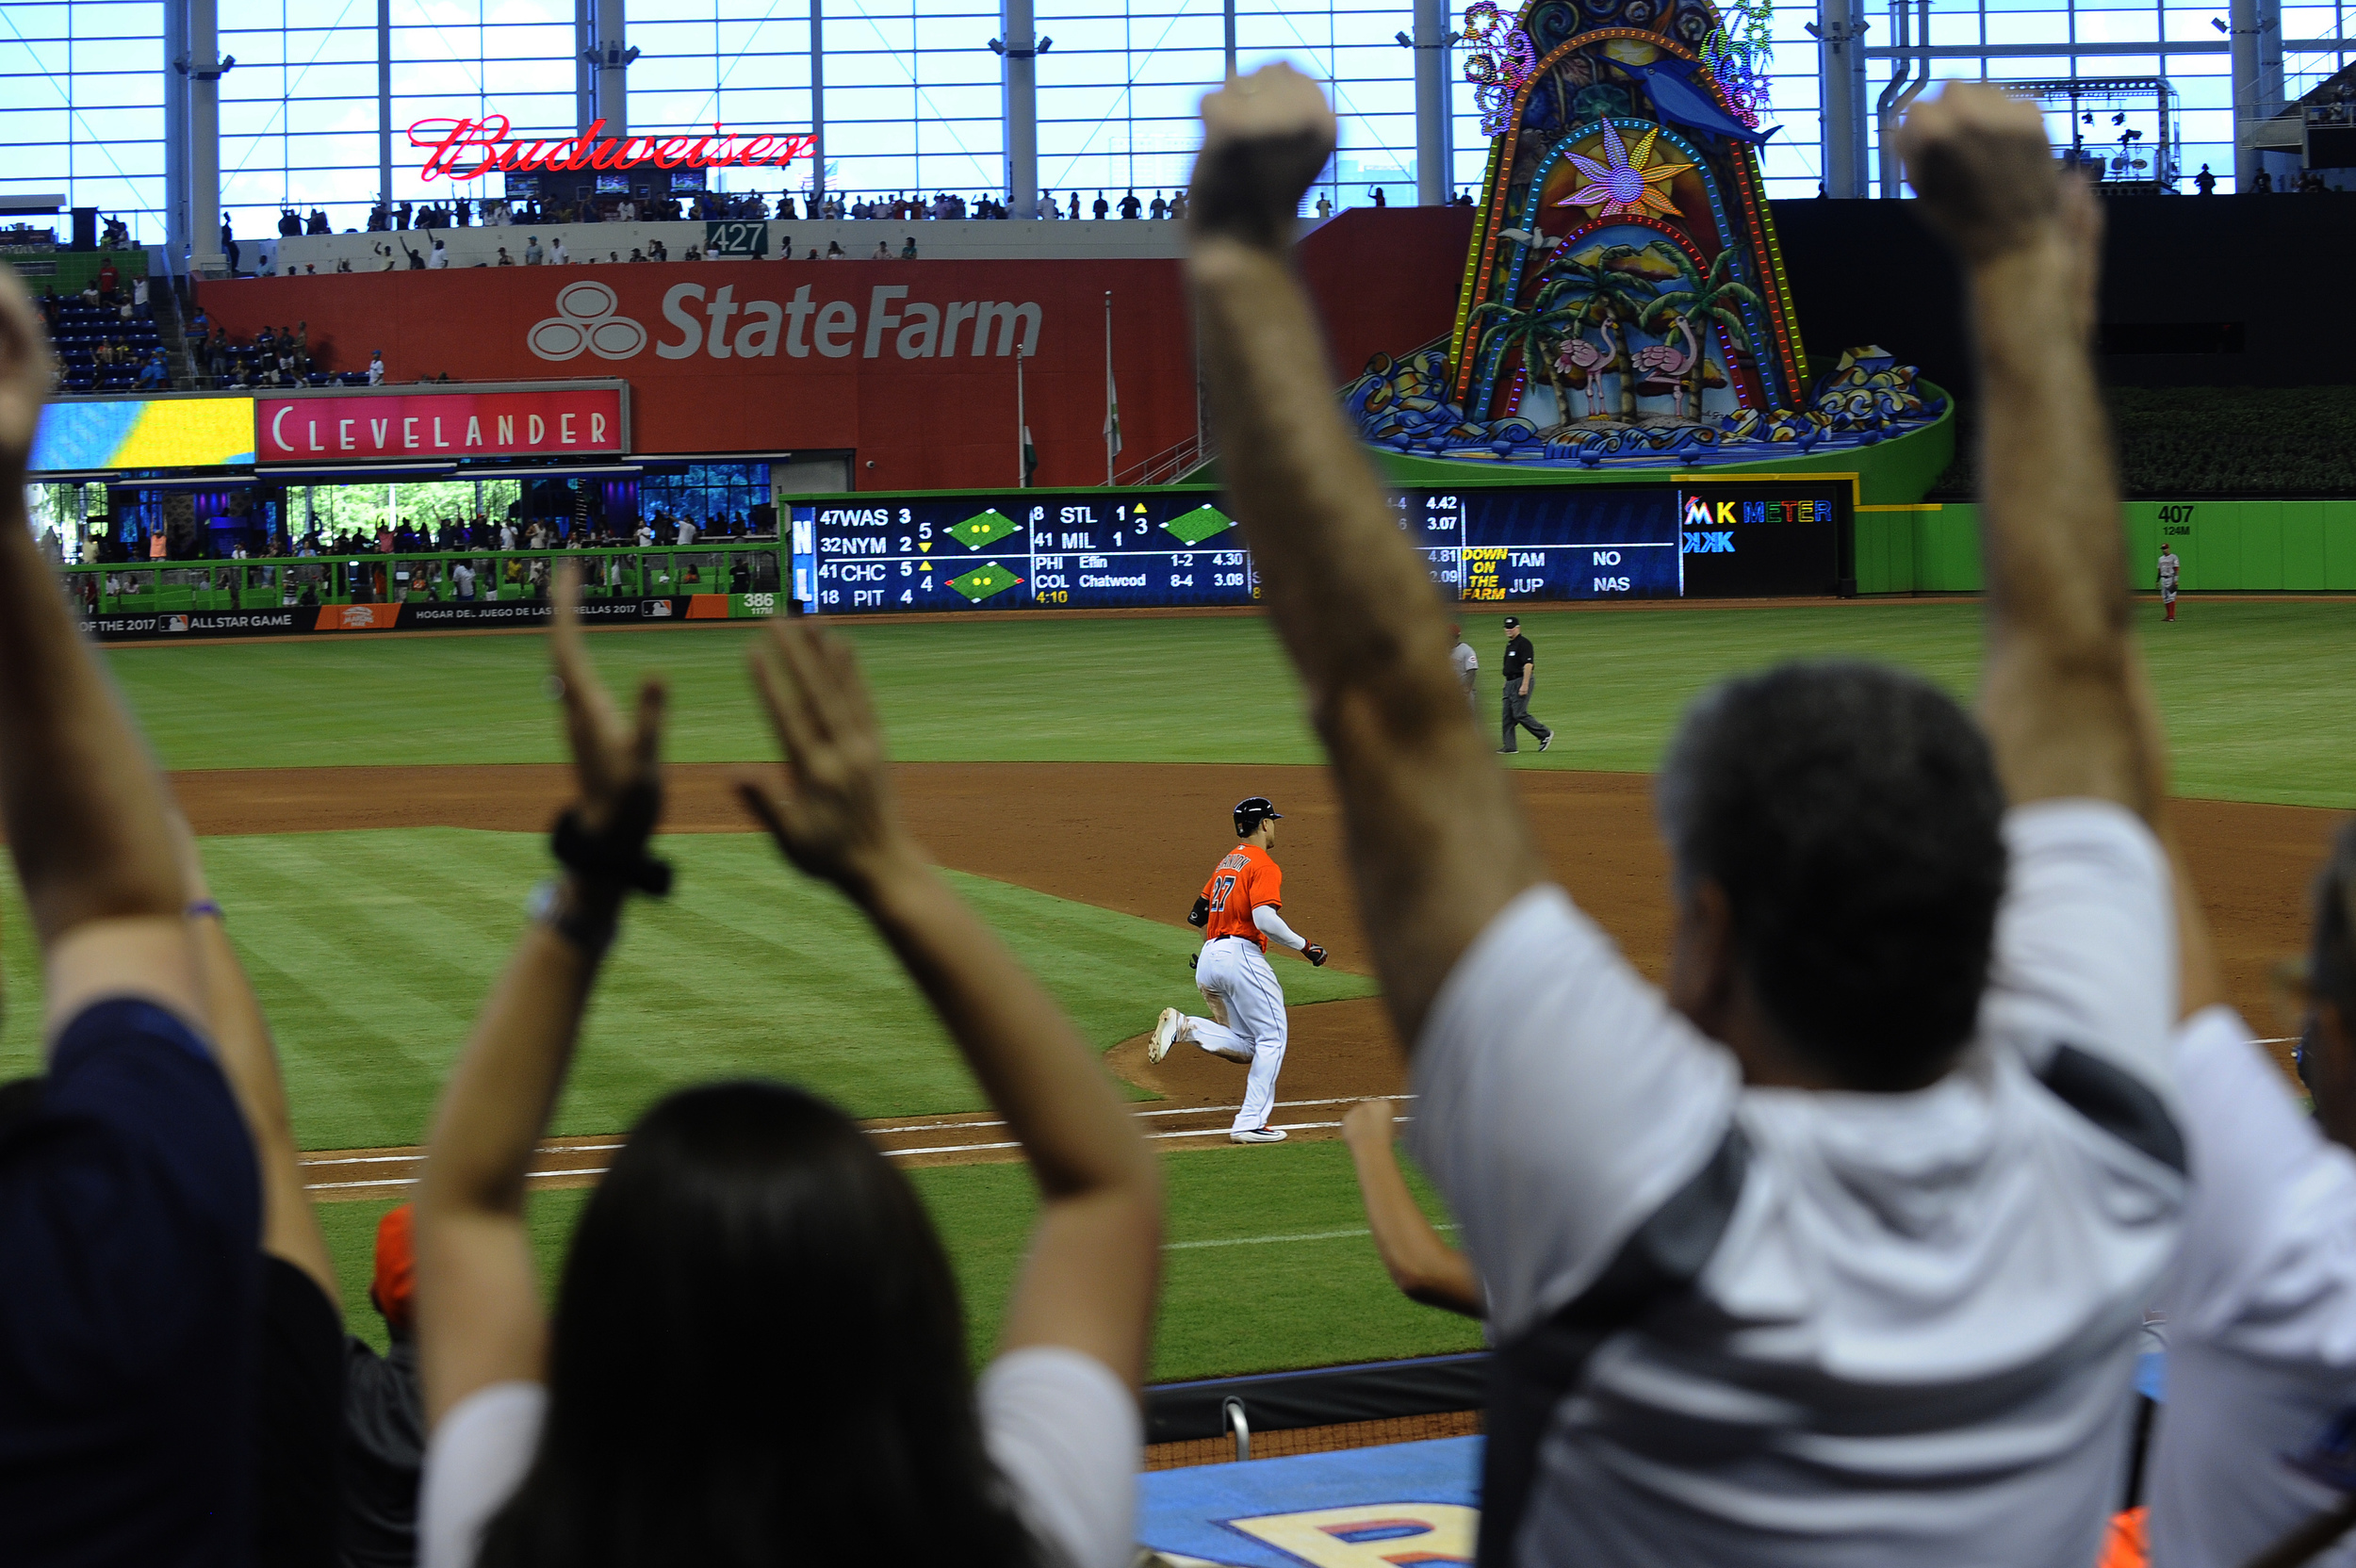 Fans celebrate as Miami Marlins right fielder Giancarlo Stanton (27) heads around the bases after hitting a home run during their game against the Cincinnati Reds at Marlins Stadium on July 10, 2016.